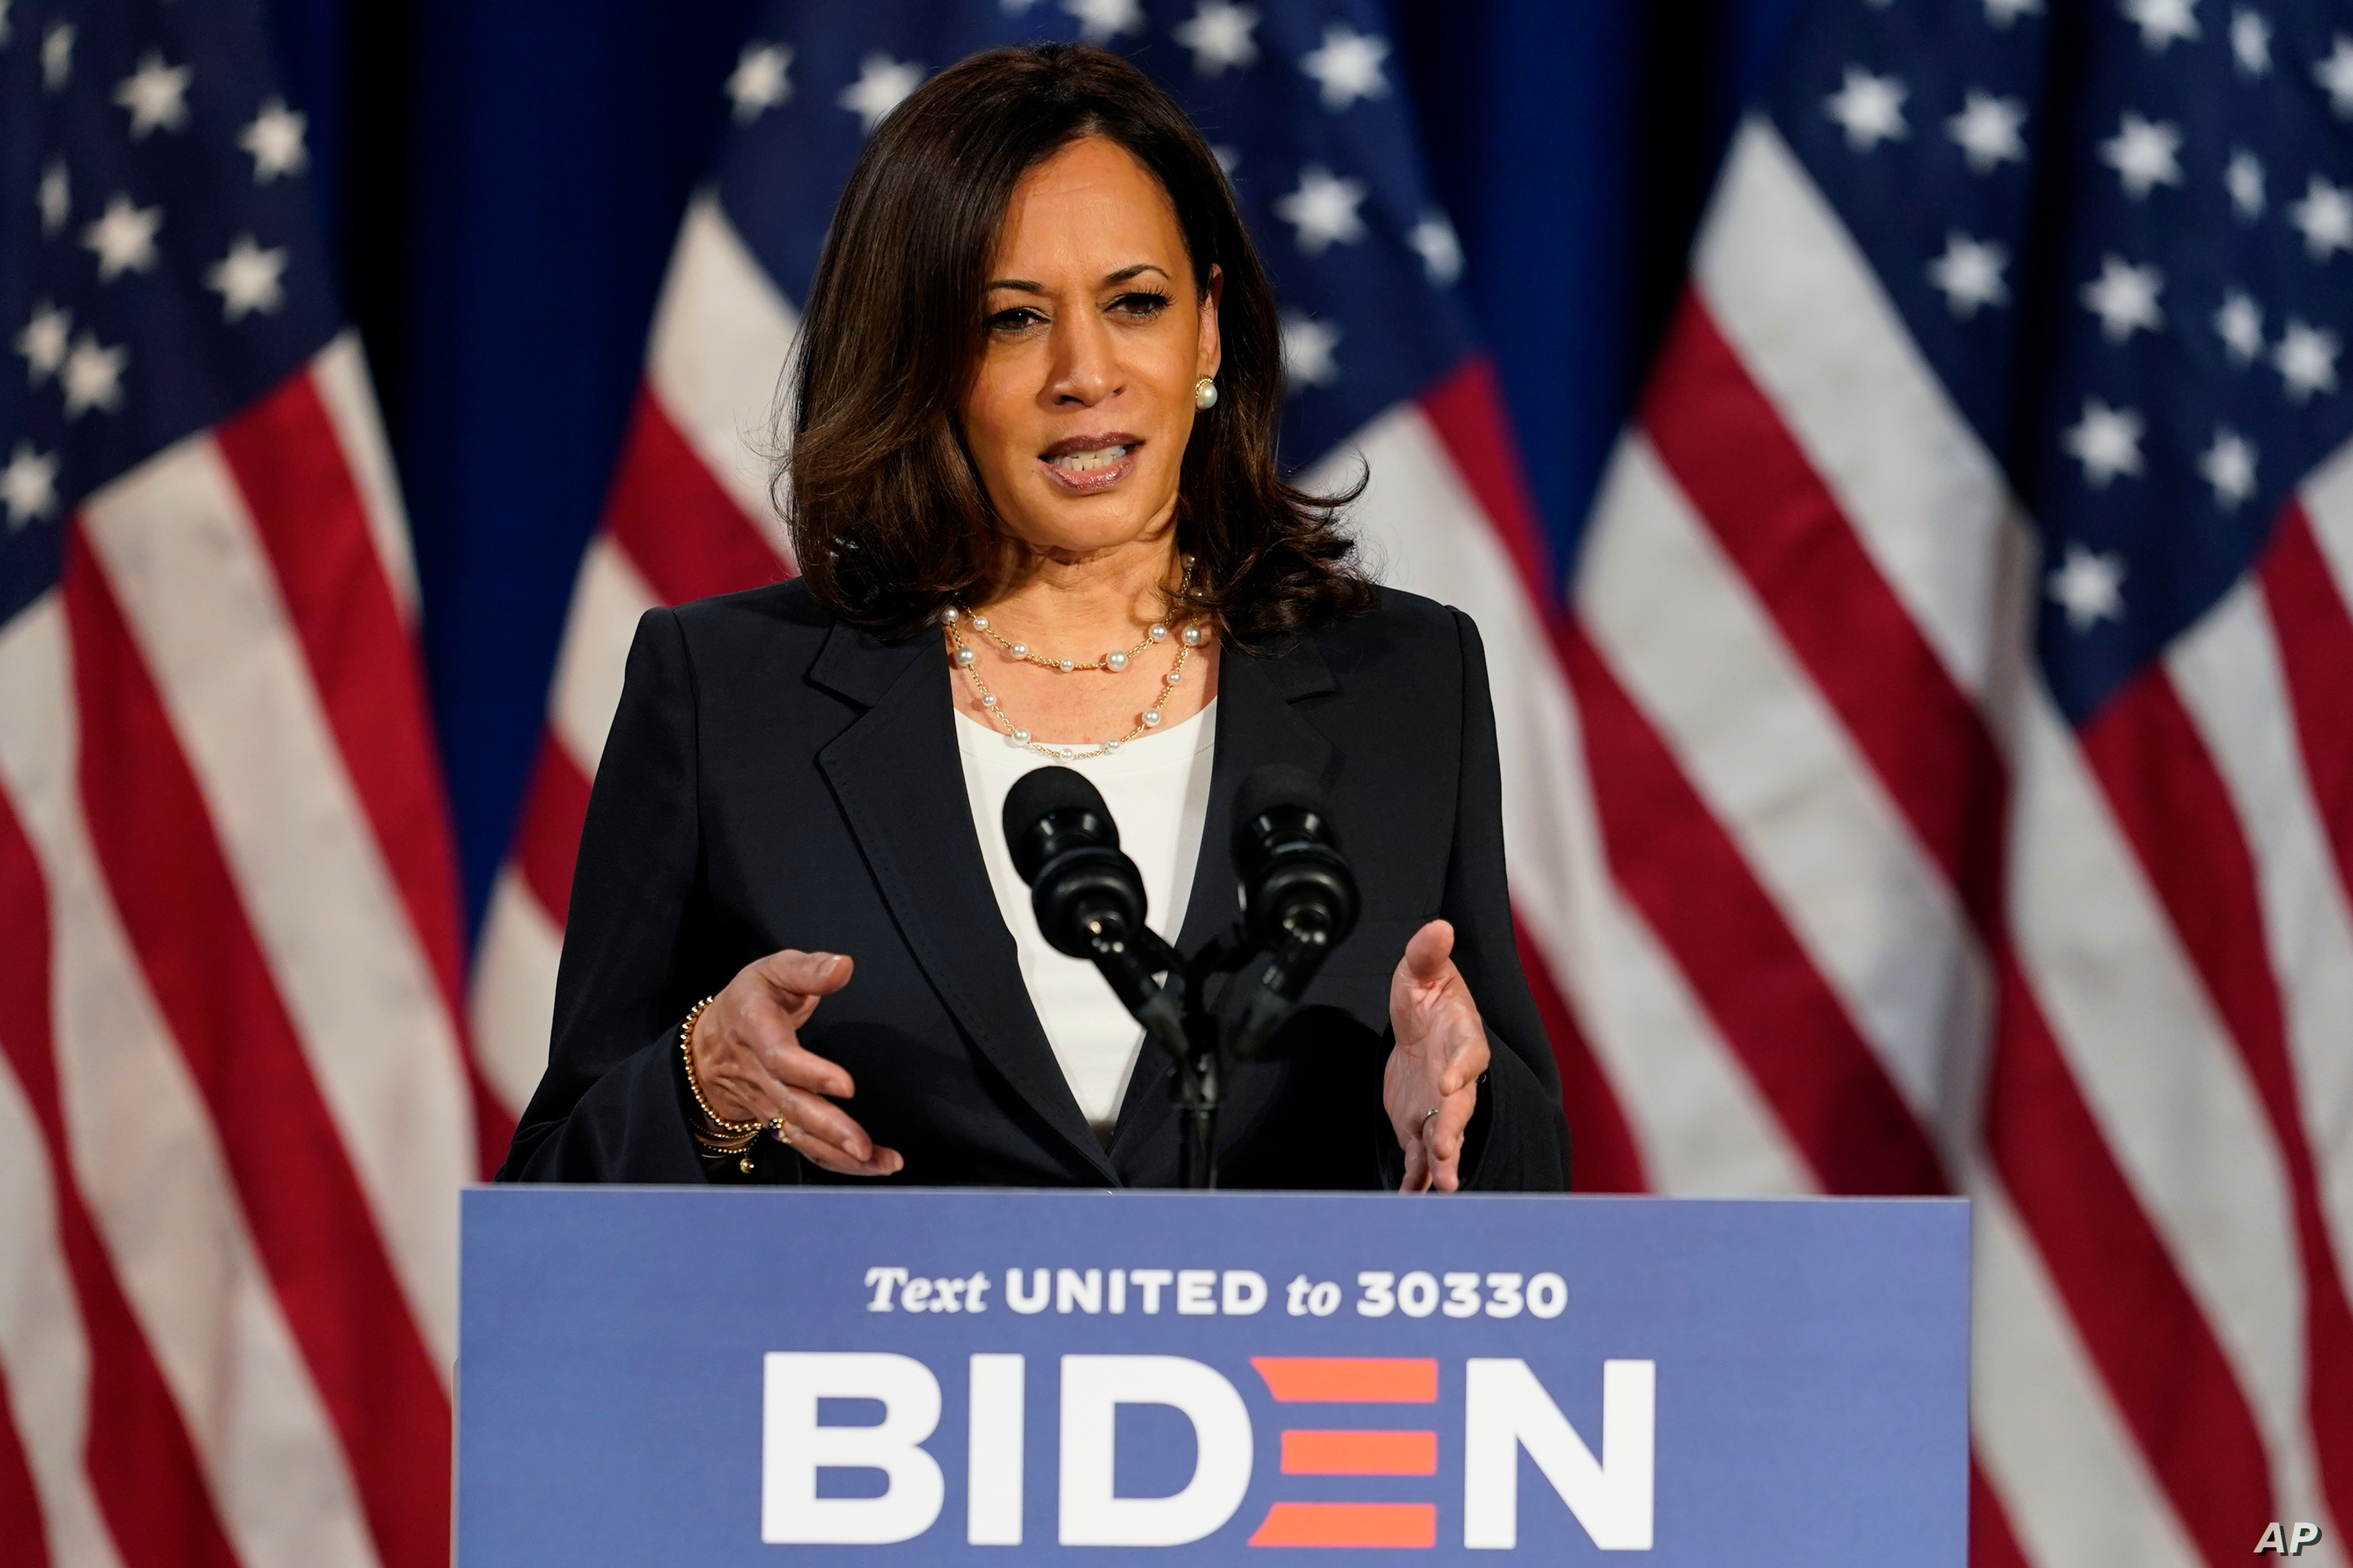 Kamala Harris Projected To Be First Woman Of Color Elected Us Vice President Voice Of America English